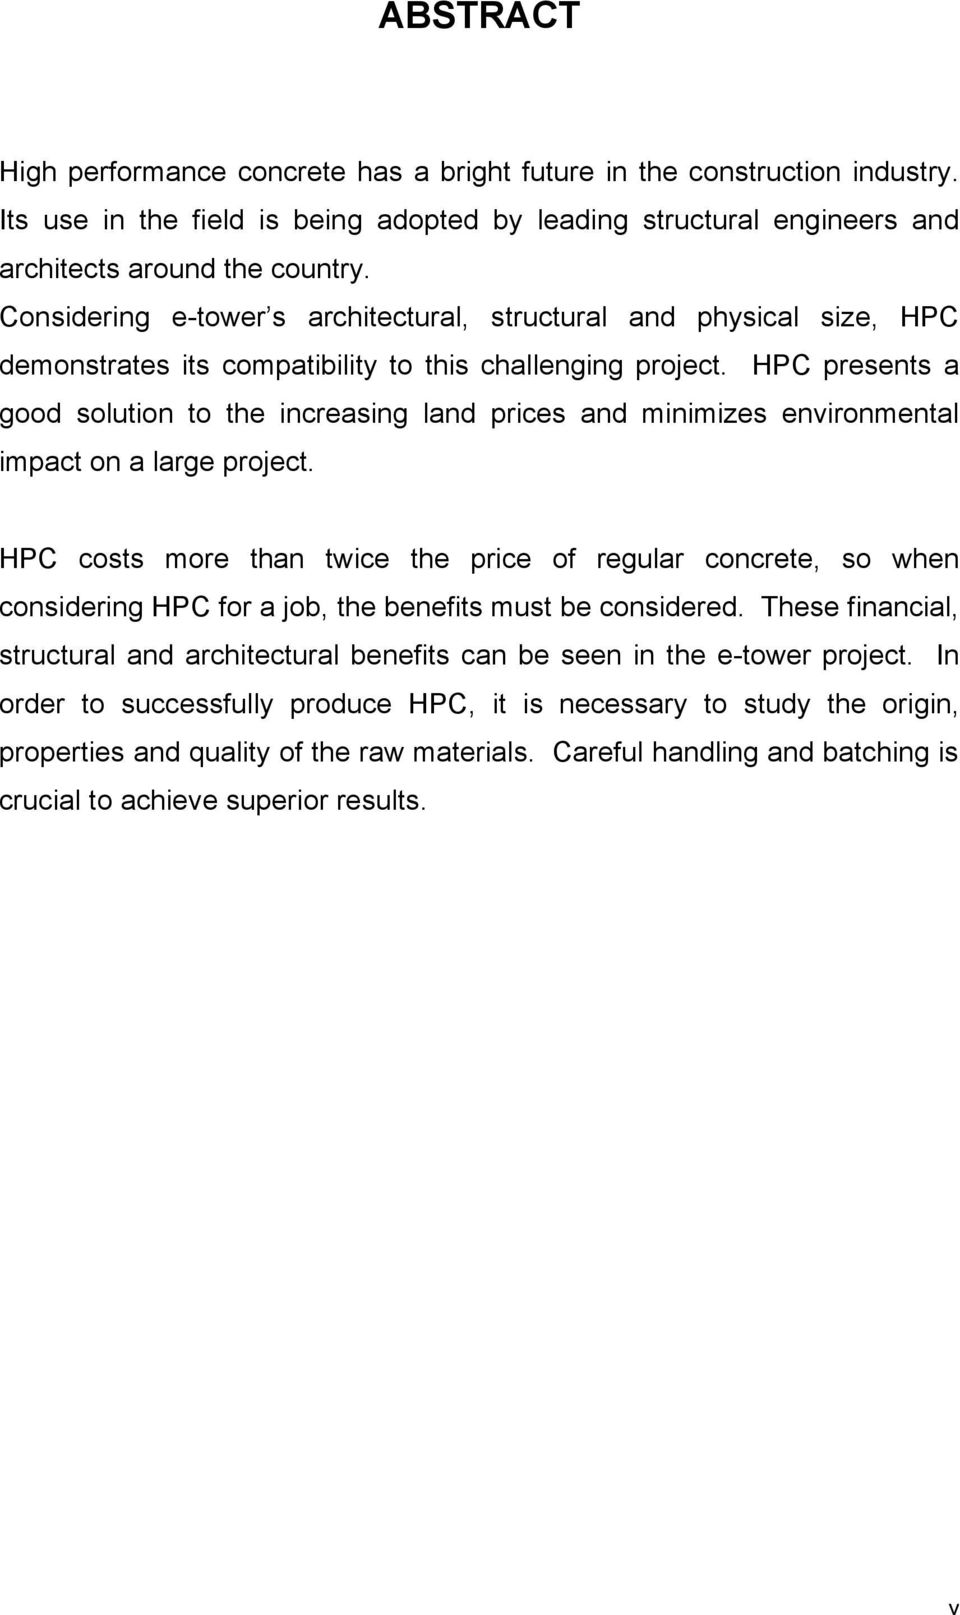 HPC presents a good solution to the increasing land prices and minimizes environmental impact on a large project.